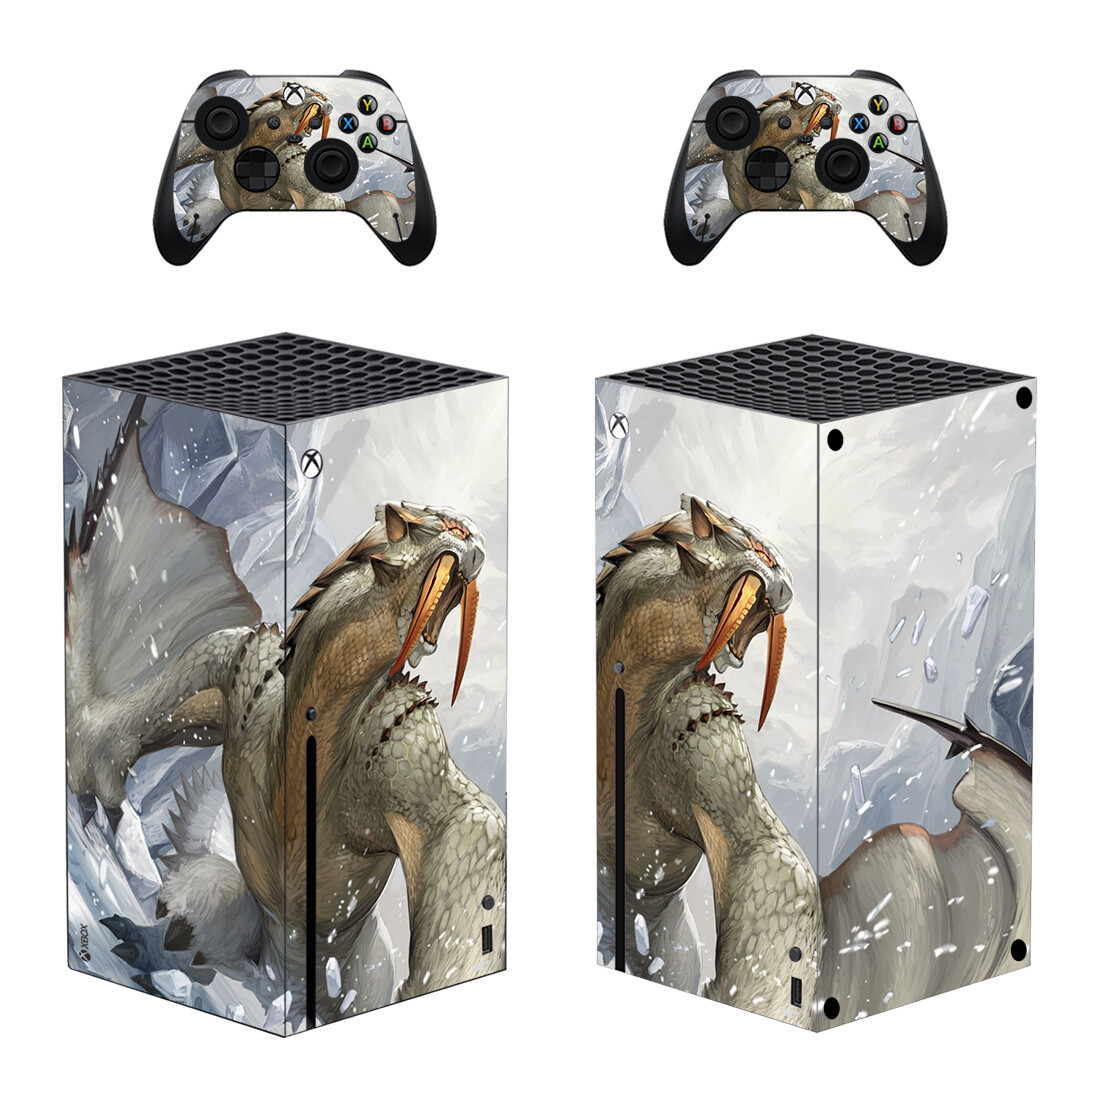 Dragon Skin Sticker For Xbox Series X And Controllers